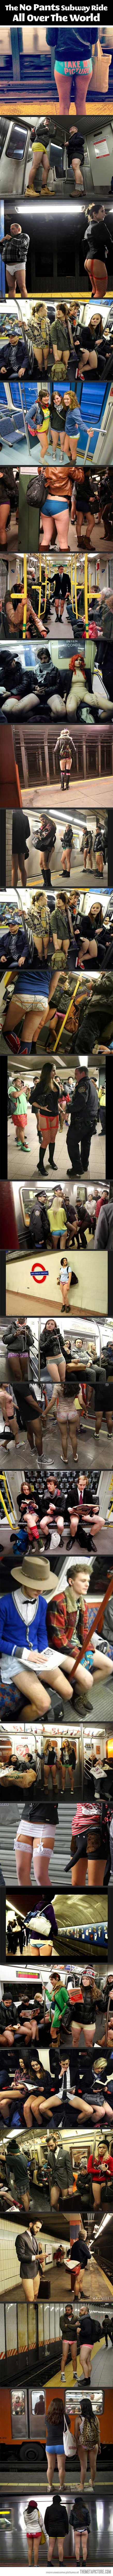 No pants subway ride…that's a lot of booty